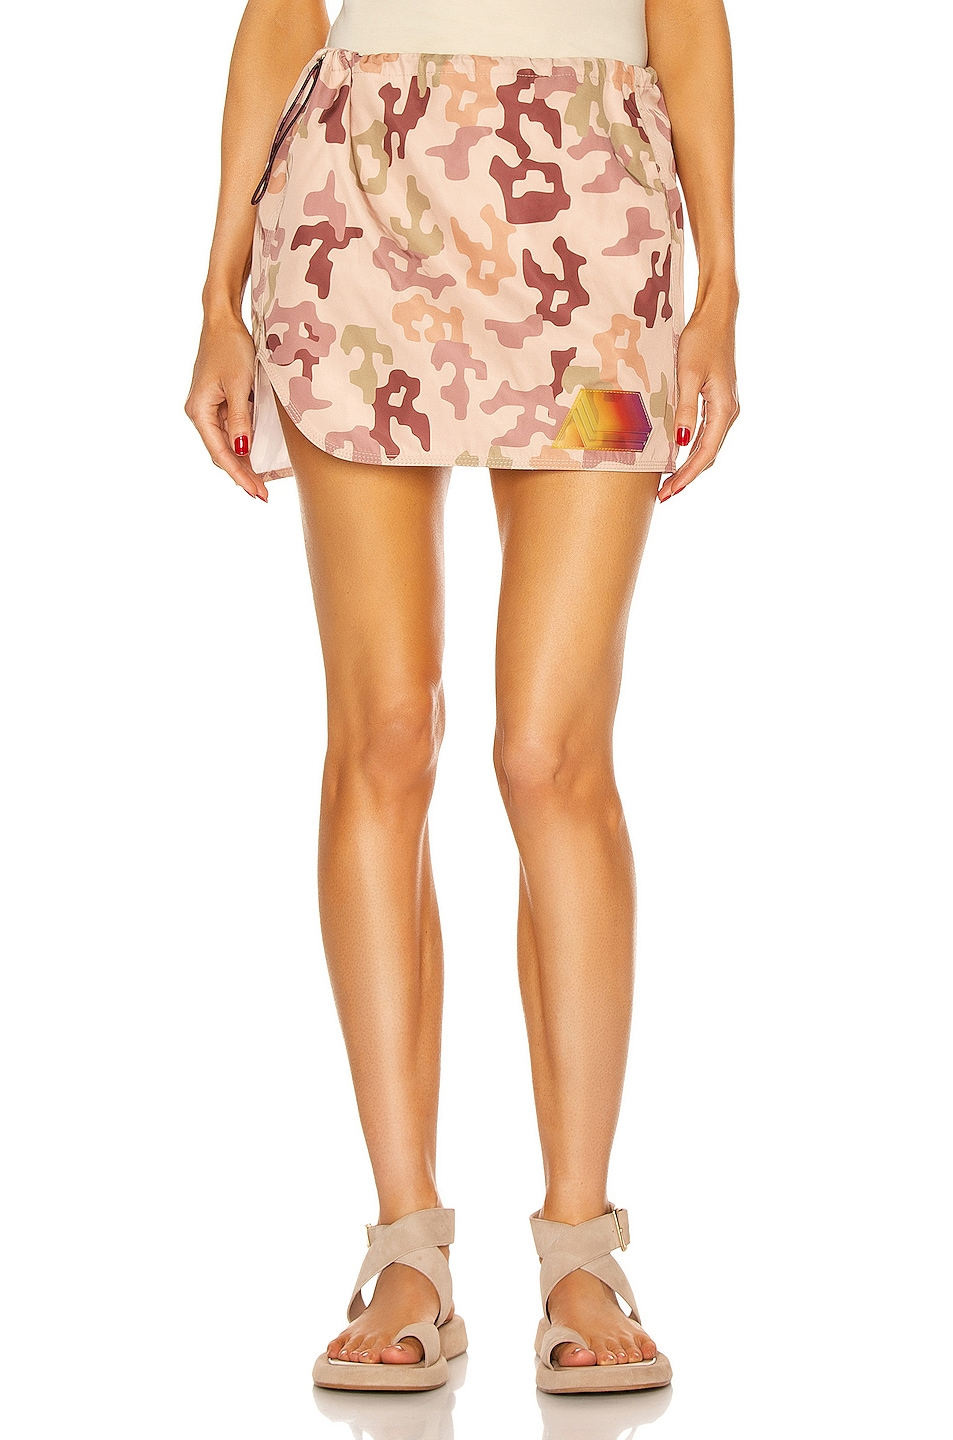 Image 1 of THE ATTICO Giana Mini Skirt in Pink, Green & Brown Camouflage